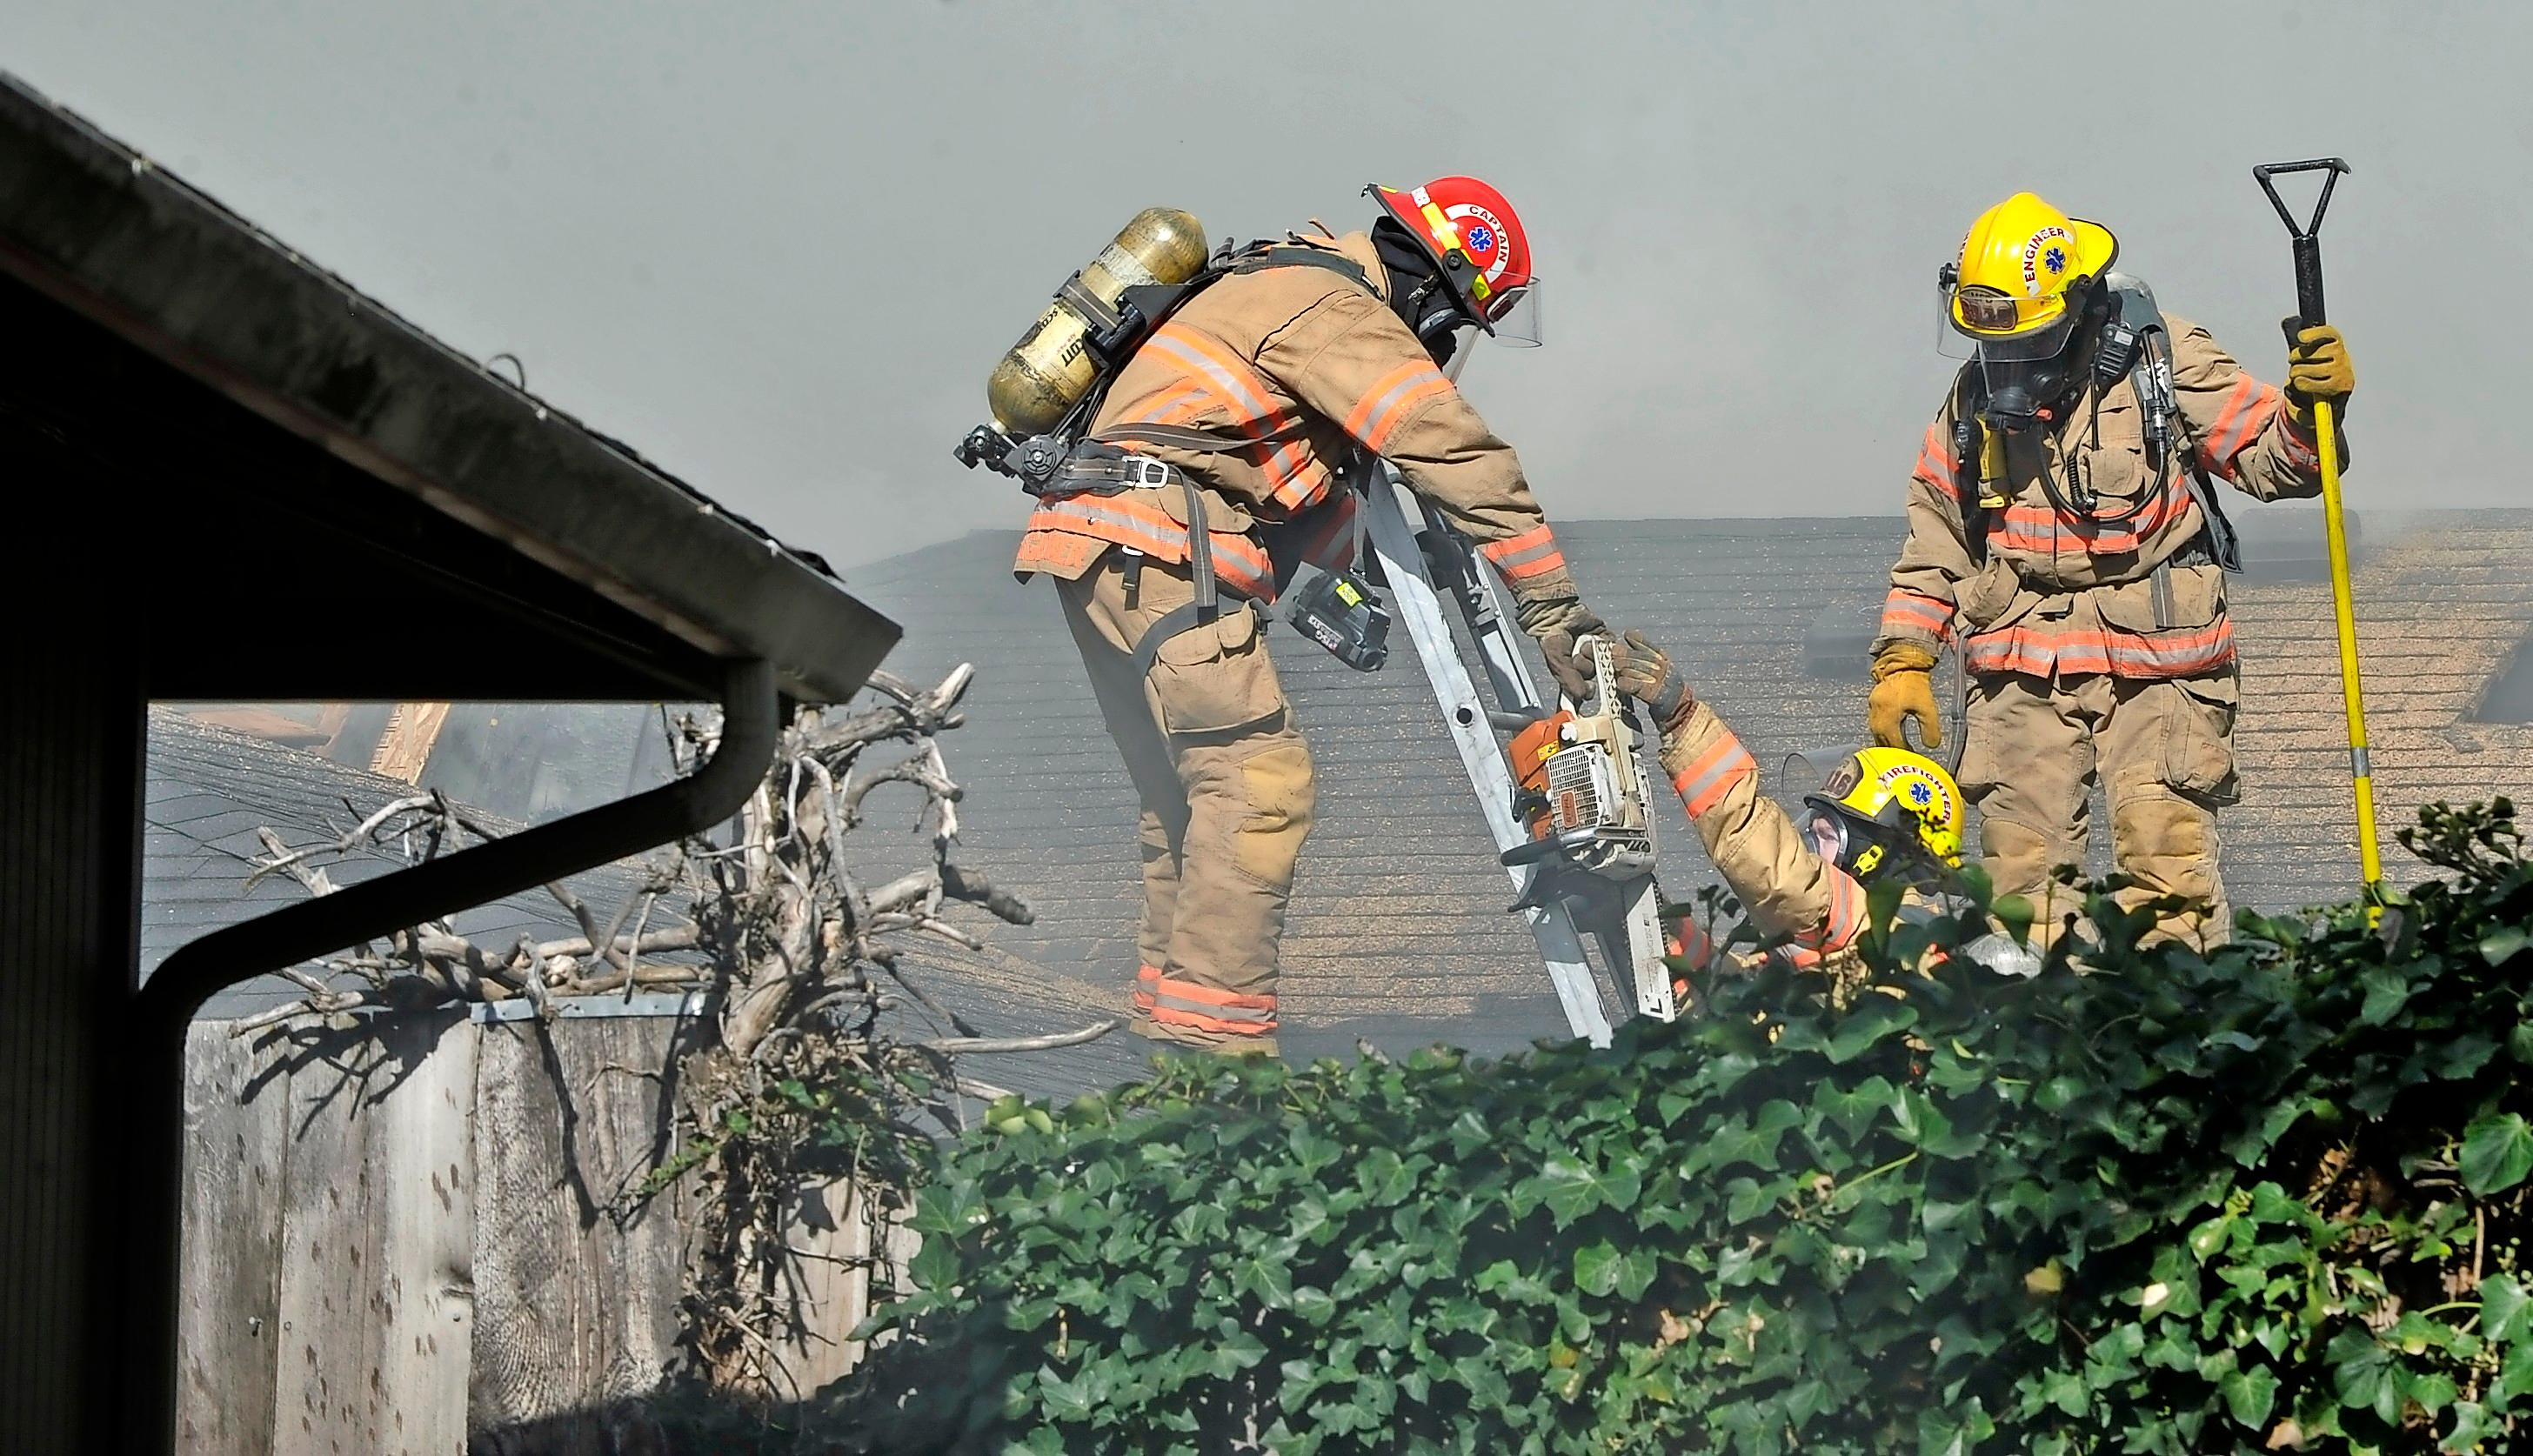 Firefighters work on the roof of a fully involved house fire near Bowmont Circle and Siskiyou Boulevard in Medford.